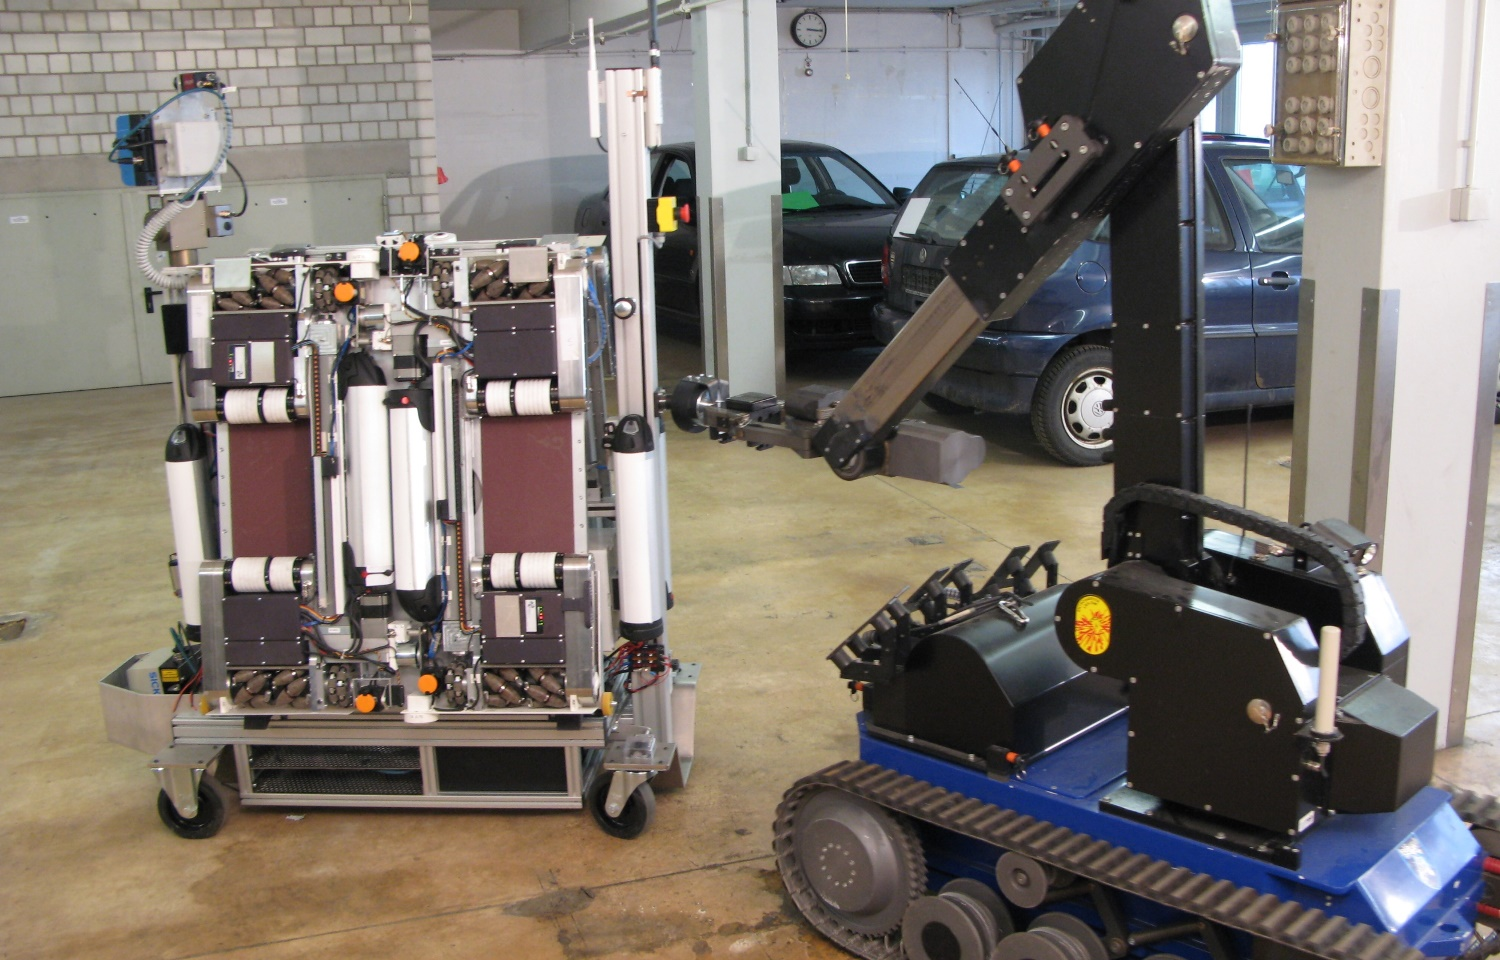 AVERT - Robots increase safety for bomb squads